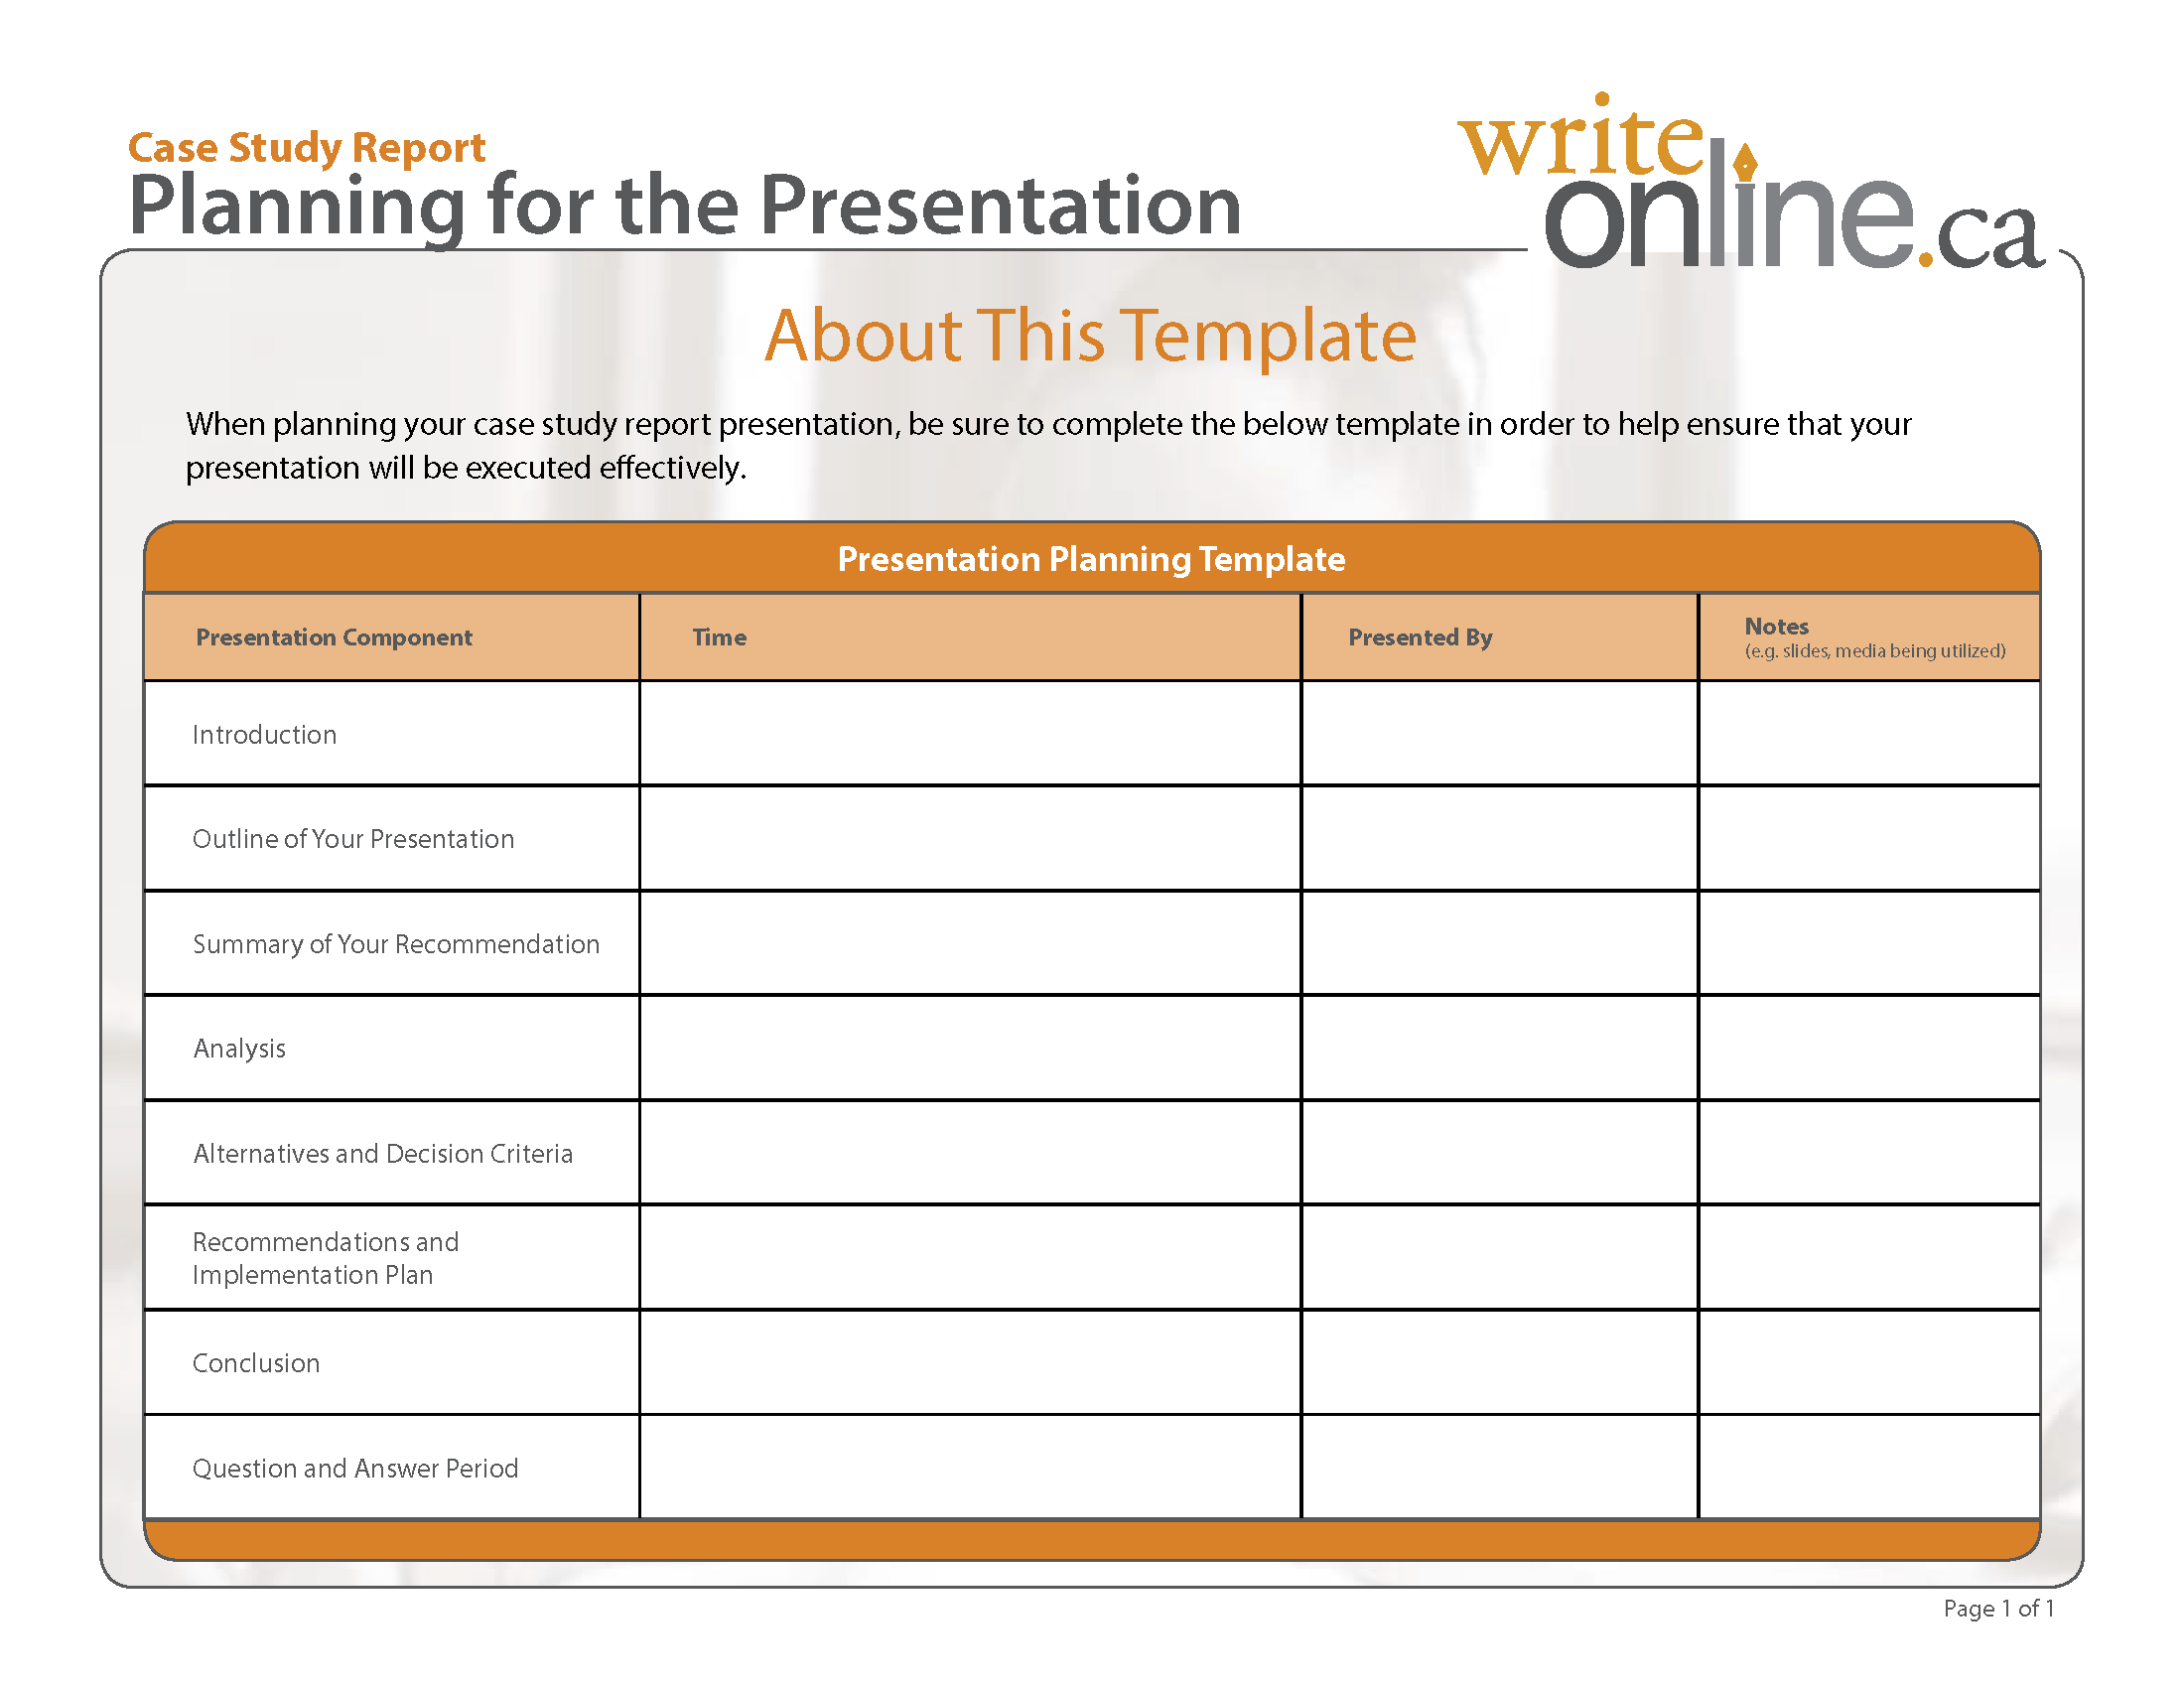 Write Online Case Study Report Writing Guide